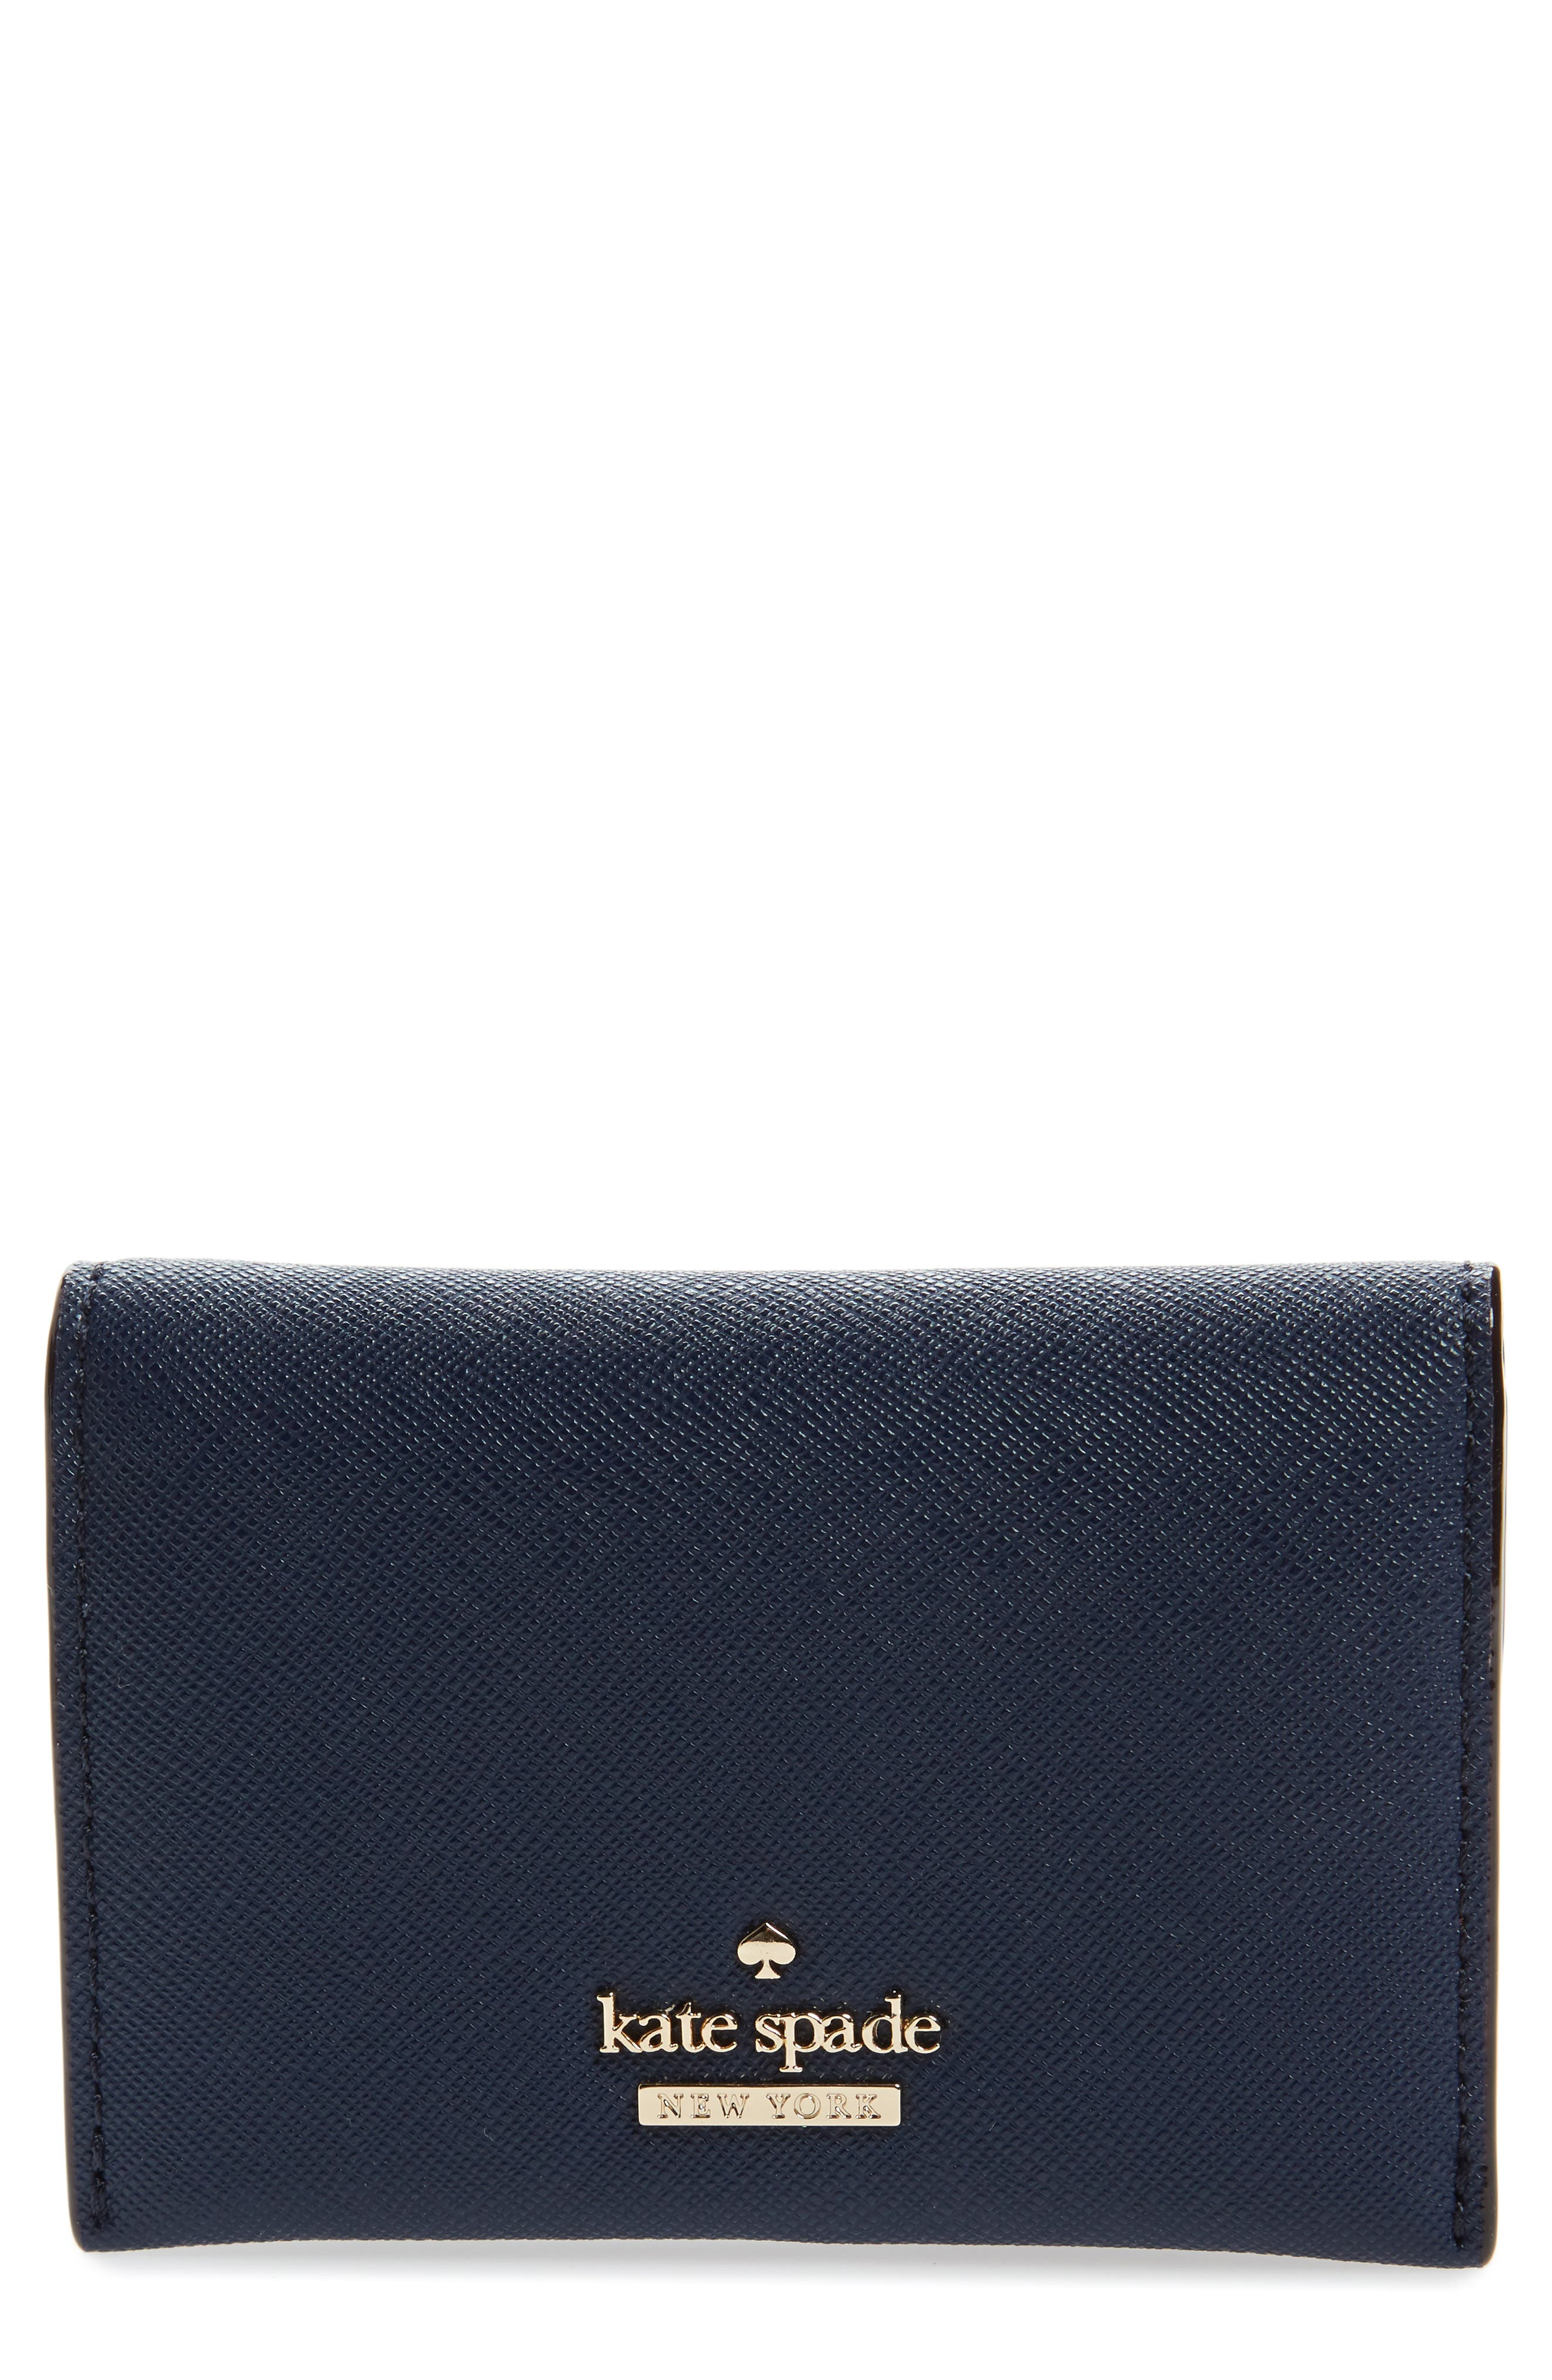 Main Image - kate spade new york cameron street - farren leather card case